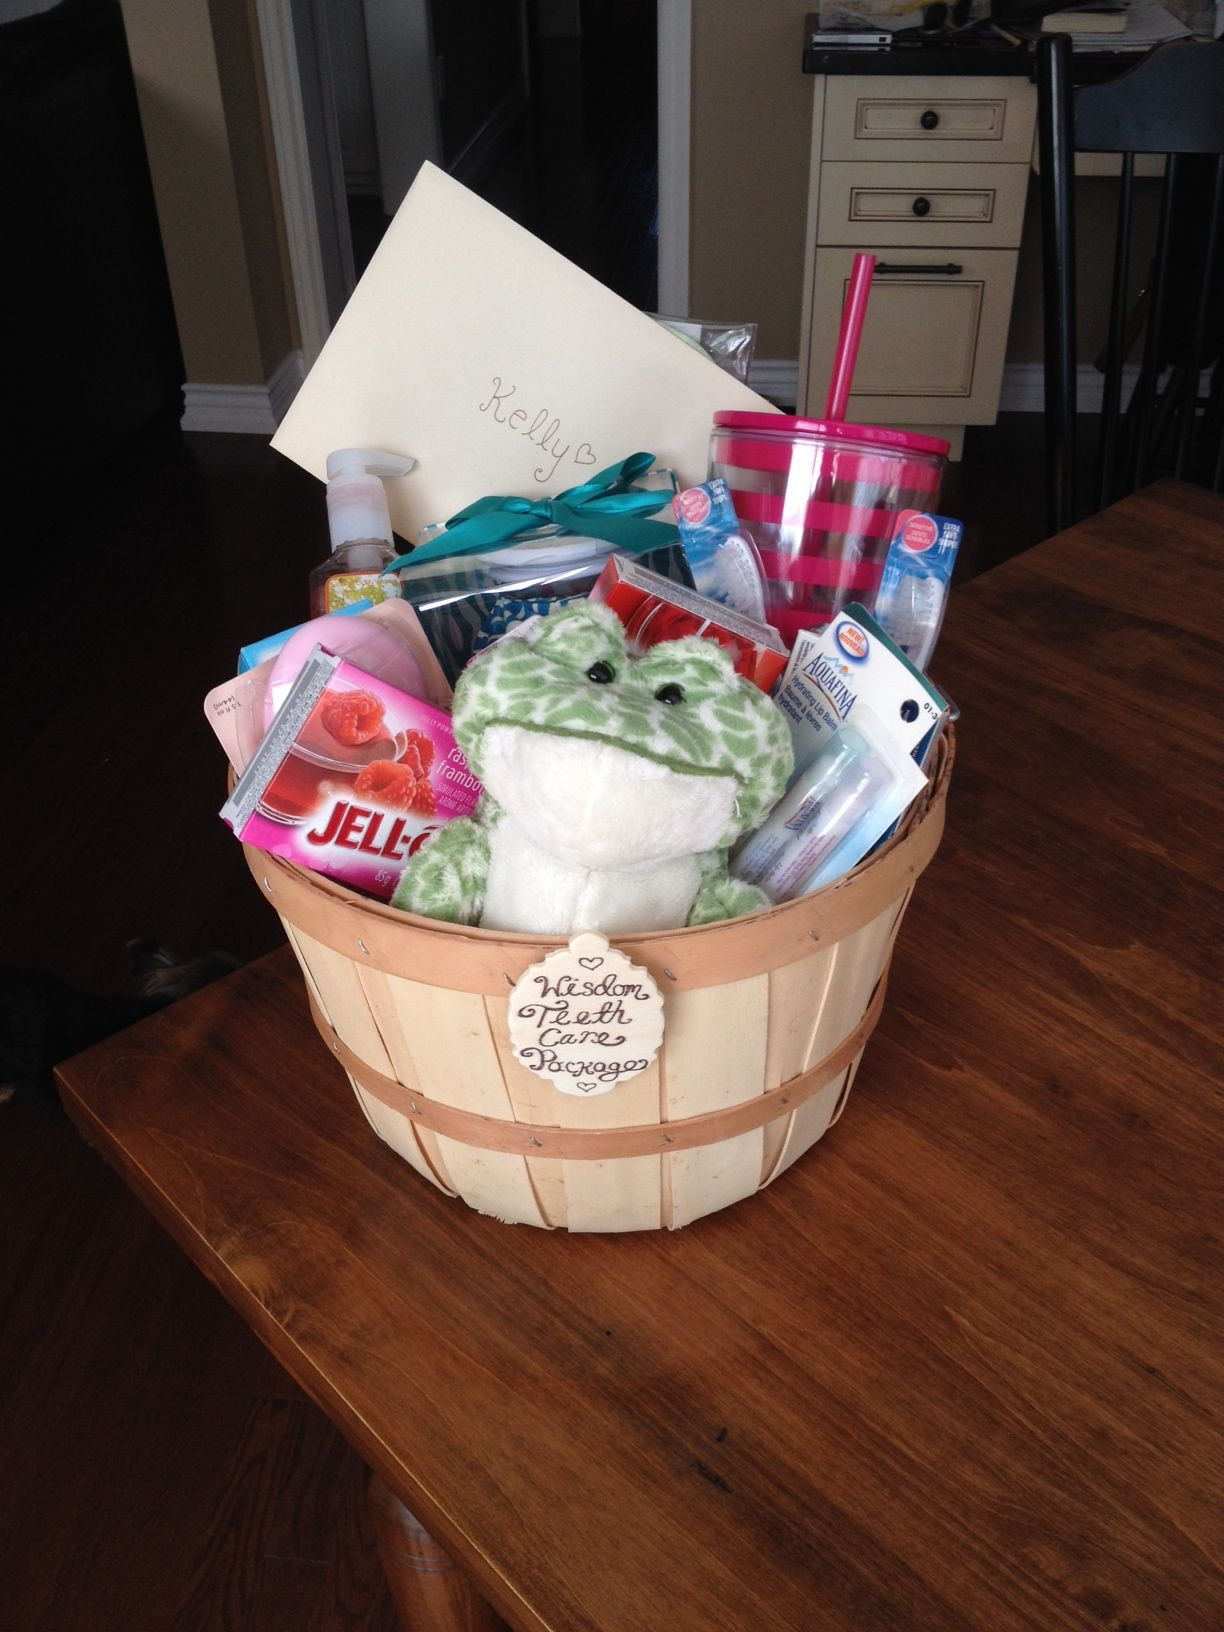 Adorable gift basket my friend made me when i got my